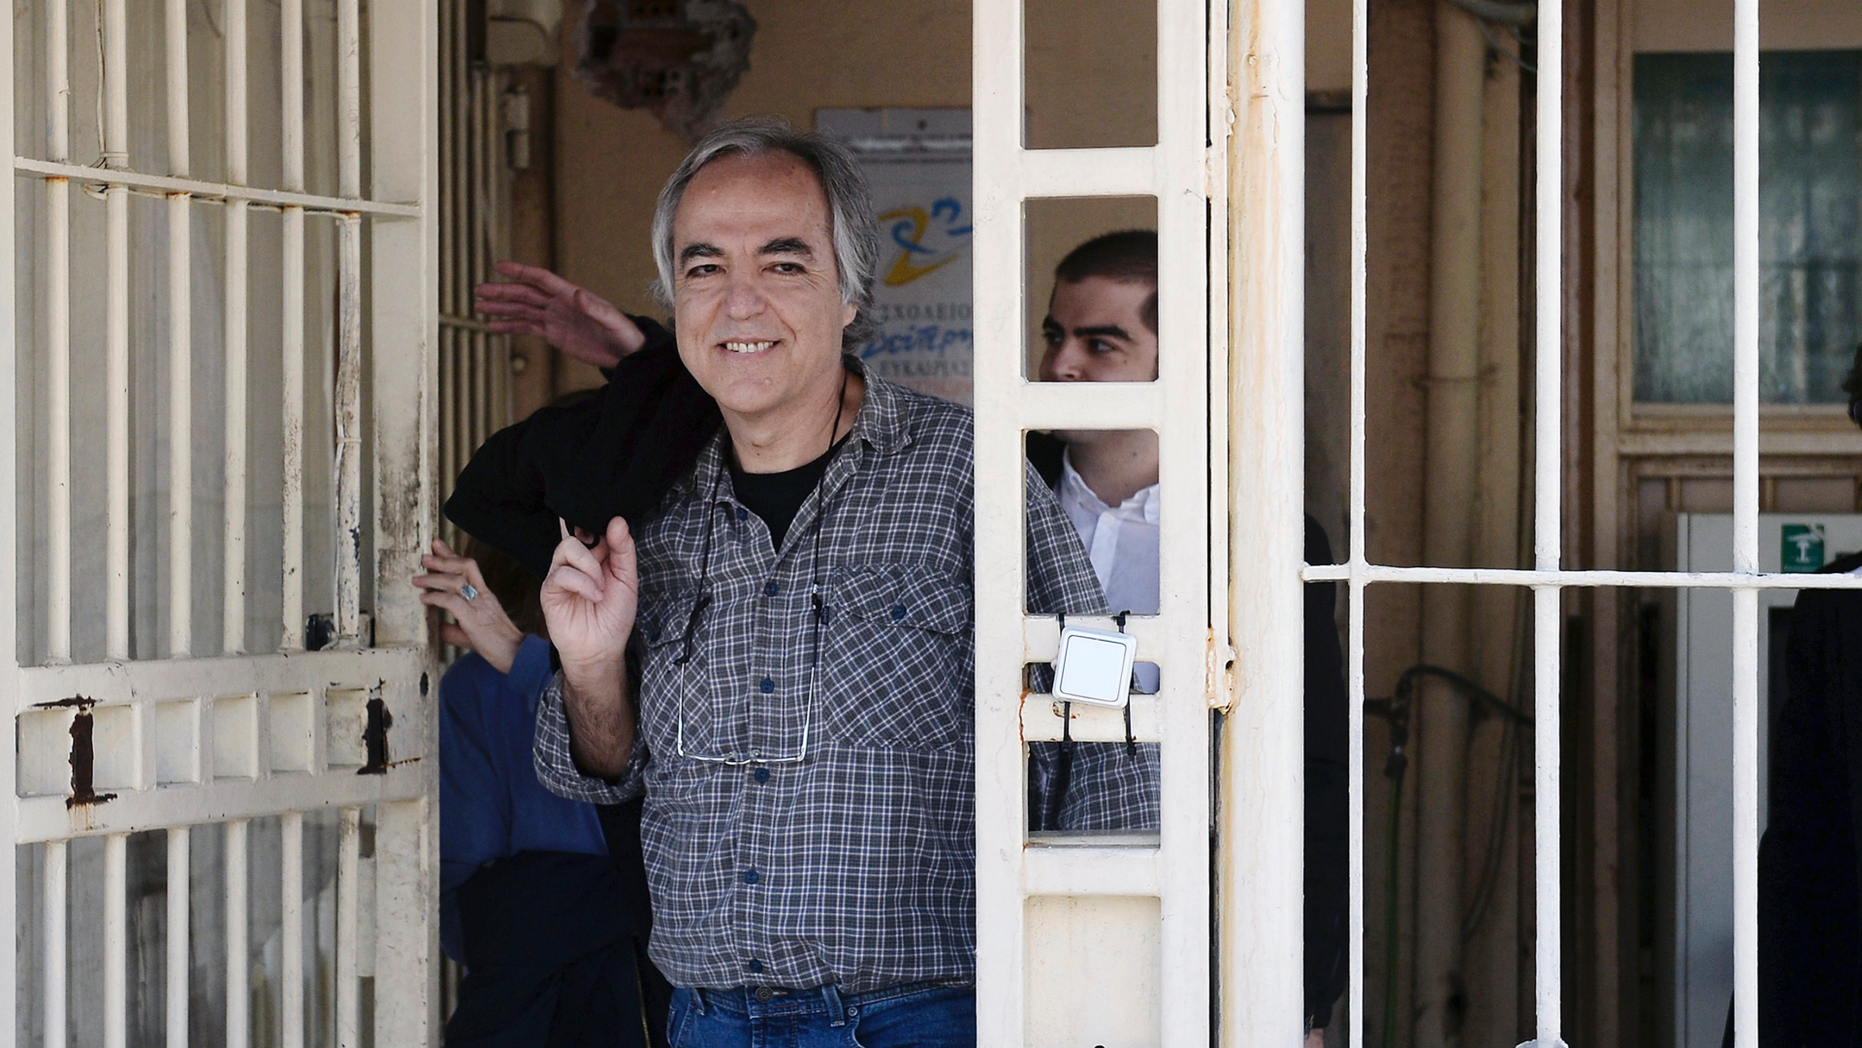 "FILE - In this Thursday, Nov. 9, 2017 file photo, Dimitris Koufodinas smiles as he leaves Korydallos prison in western Athens.  A Greek far-left extremist serving 11 life terms for a string of murders is vowing to continue ""until the end"" with a hunger strike after judges rejected his bid for new leave from prison. A lawyer representing  Koufodinas, chief hit man for the November 17 group that killed 23 people from 1975-2000, says her client will also refuse medical assistance. (Yannis Kotsiaris/InTime News via AP, file)"